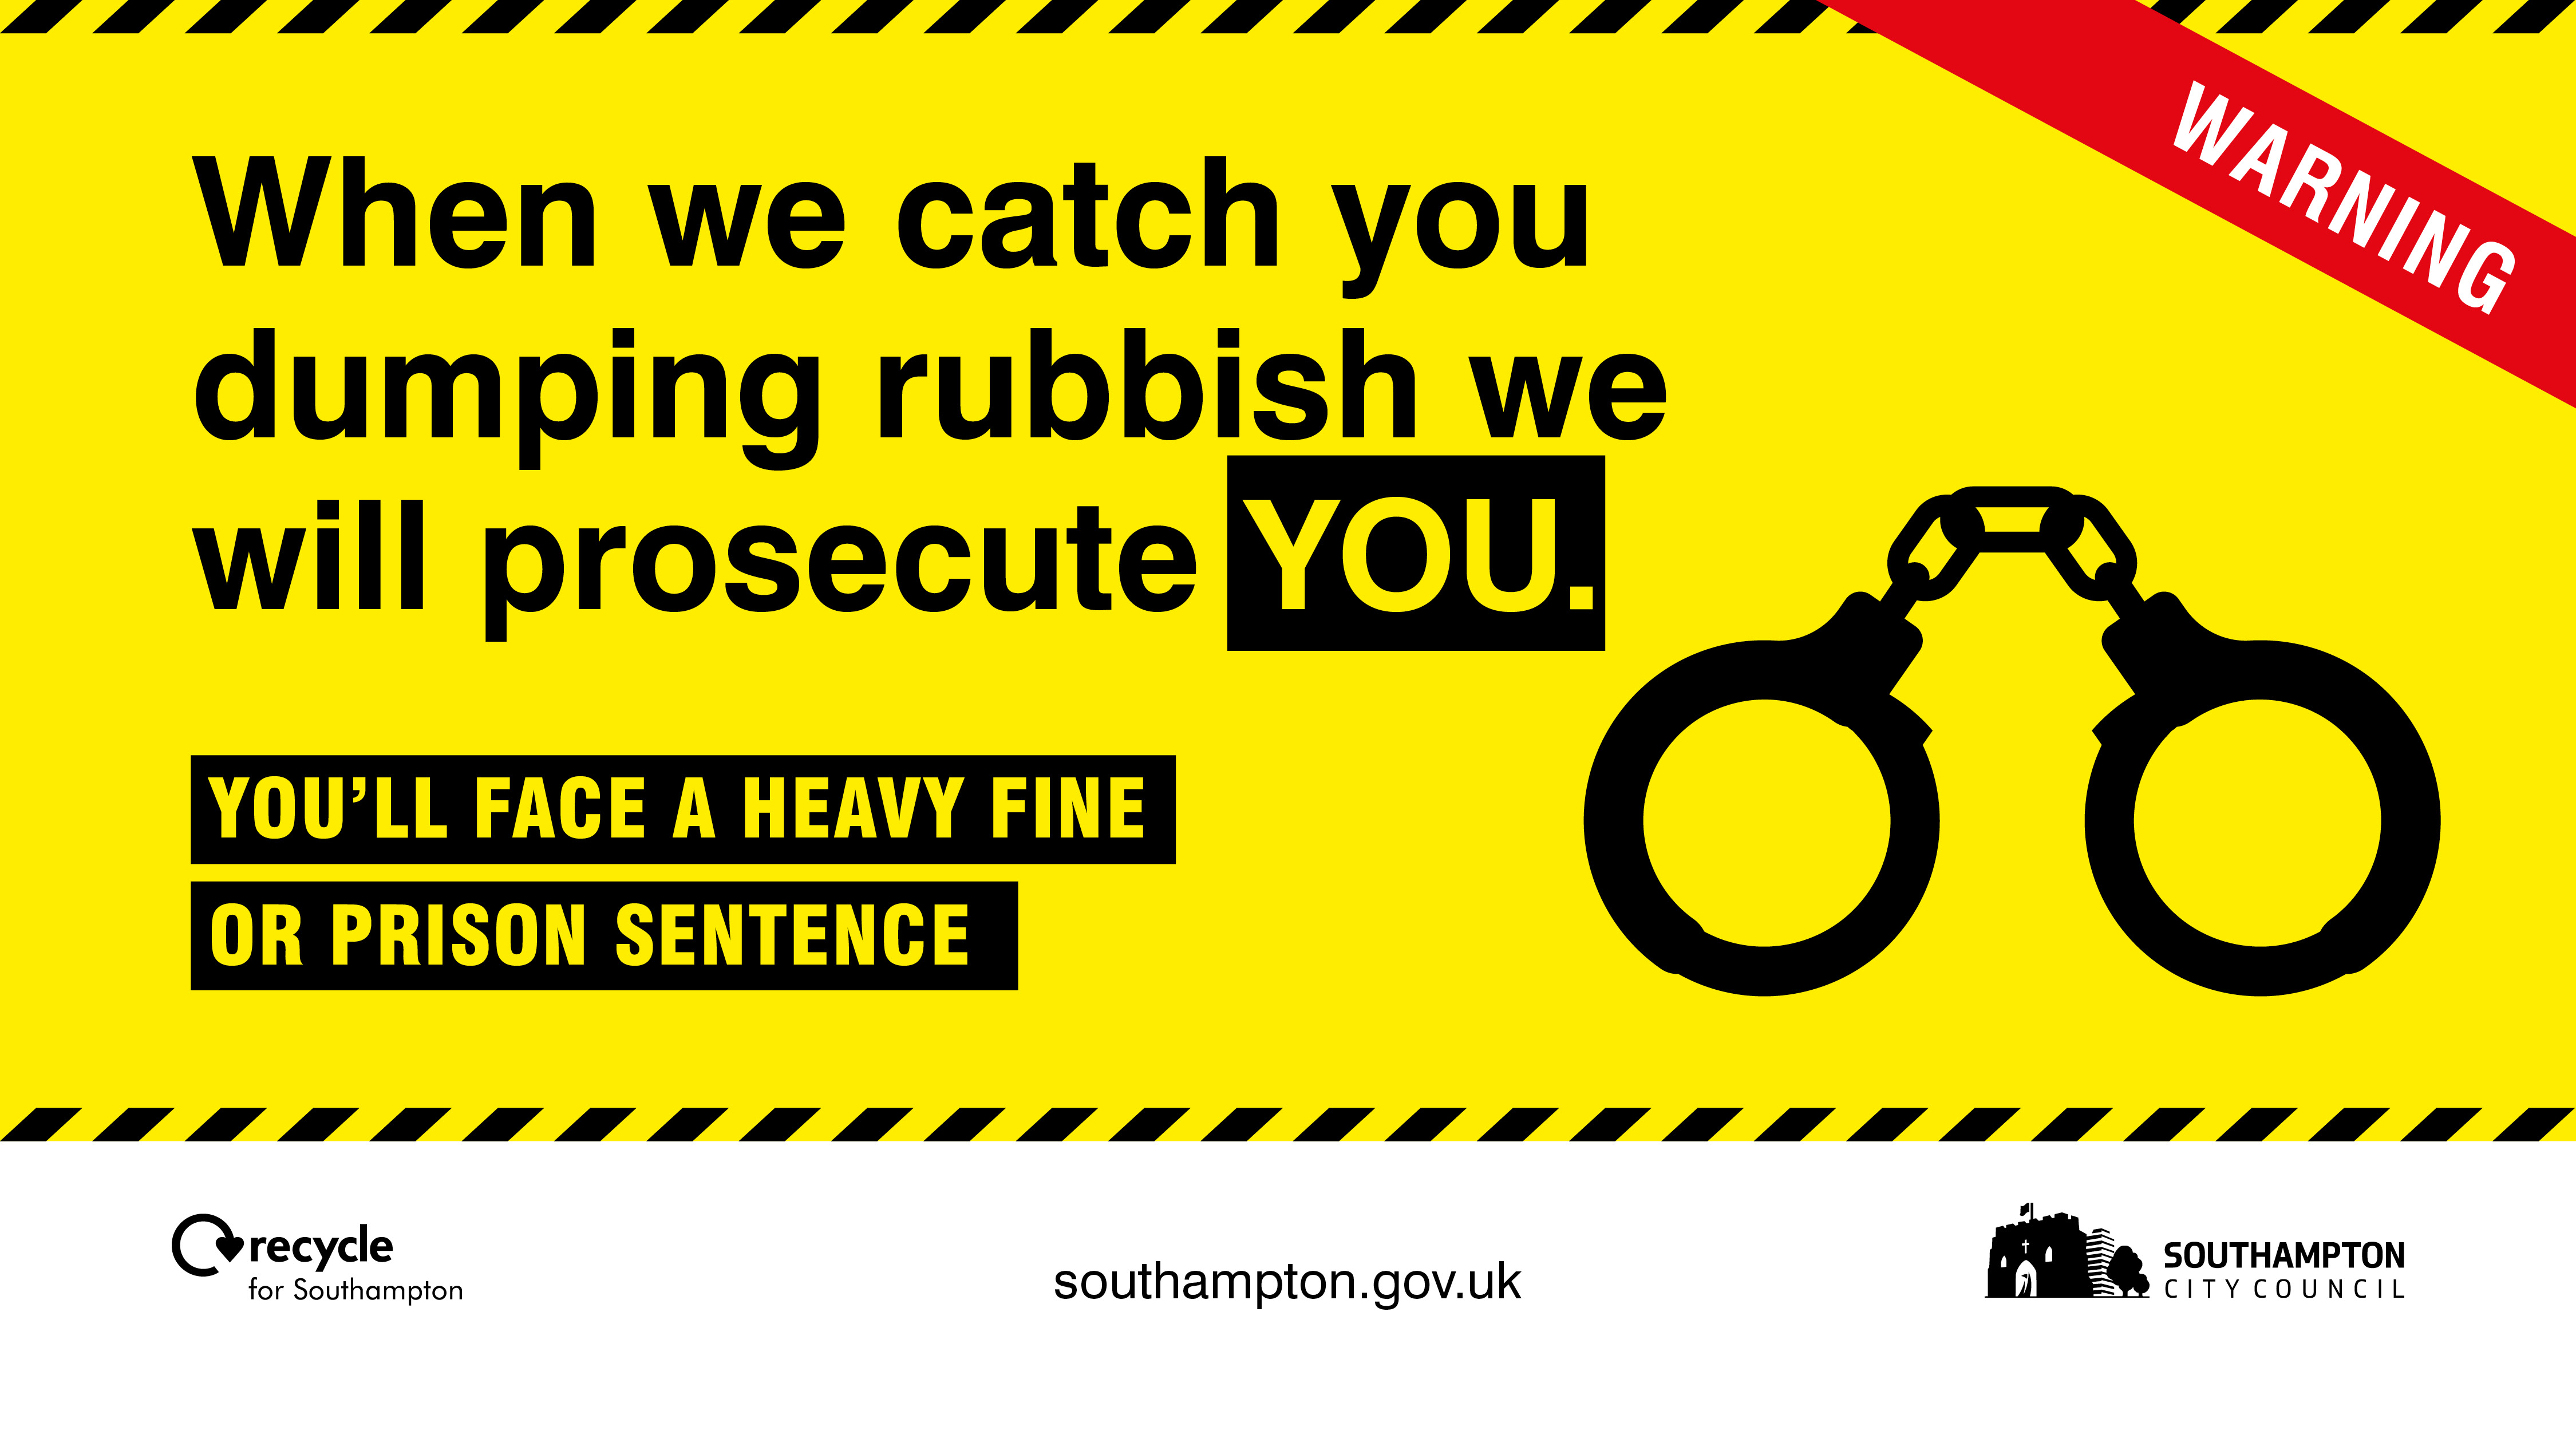 When we catch you dumping rubbish, we will prosecute you. You'll face a heavy fine or prison sentence